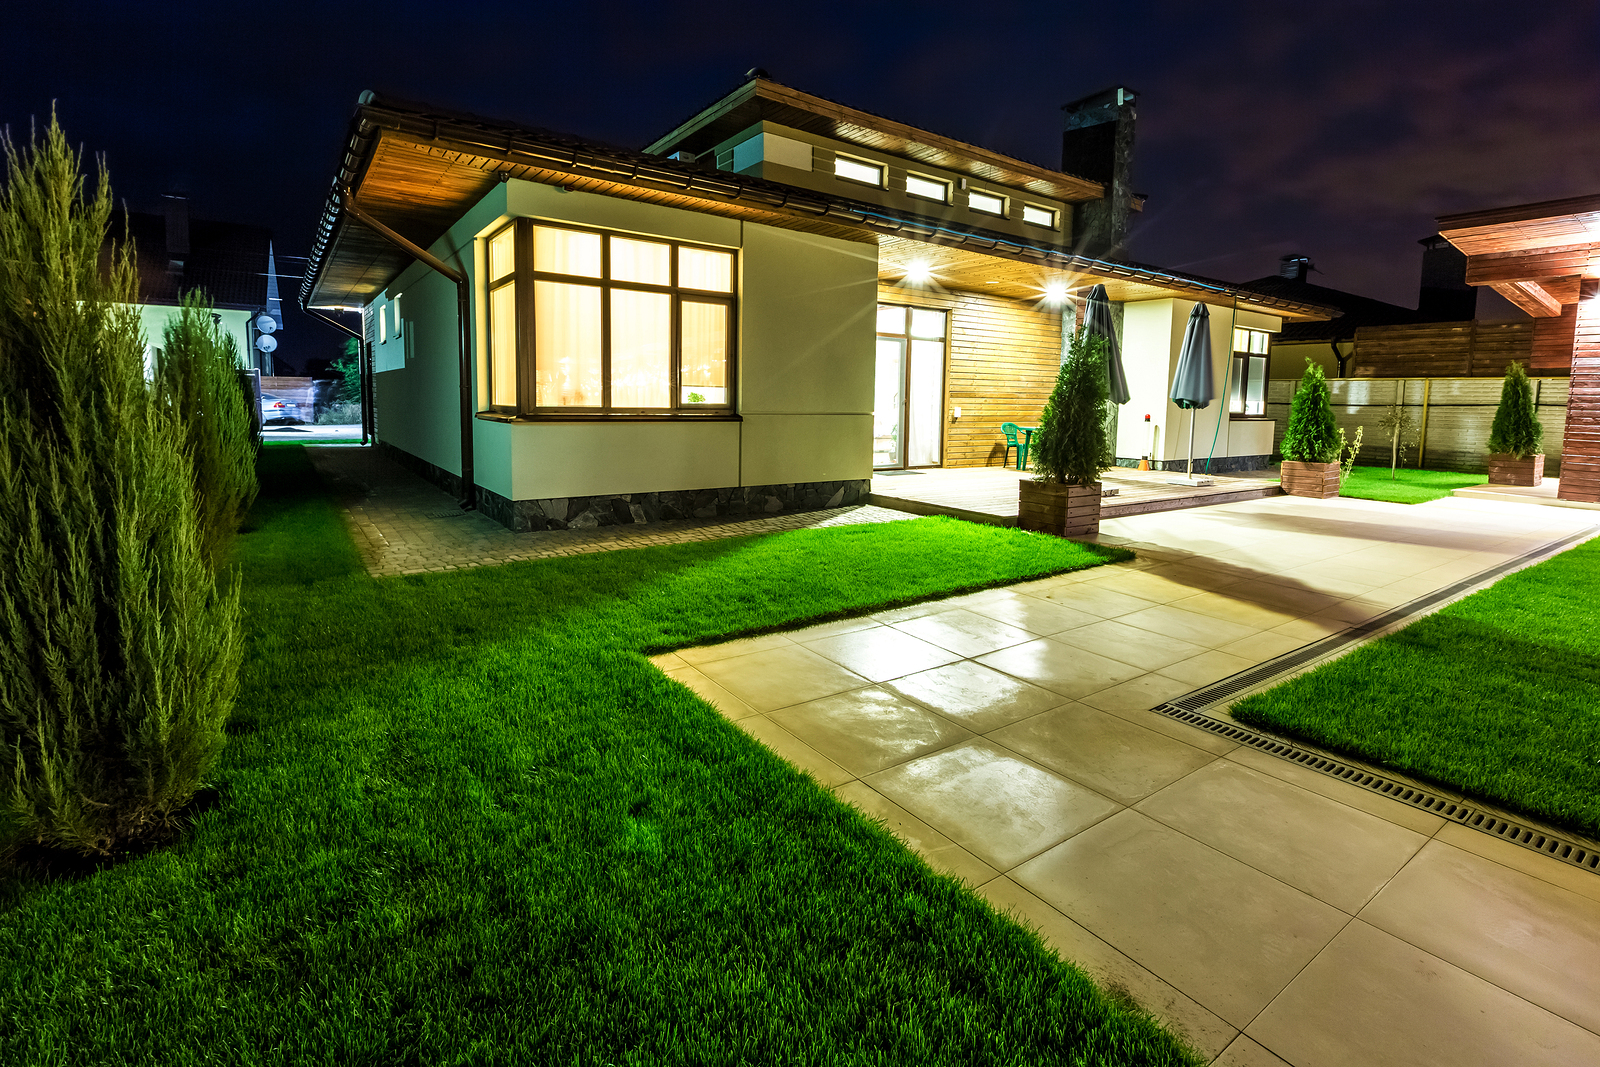 bigstock-Detached-house-at-night-view-f-115608170